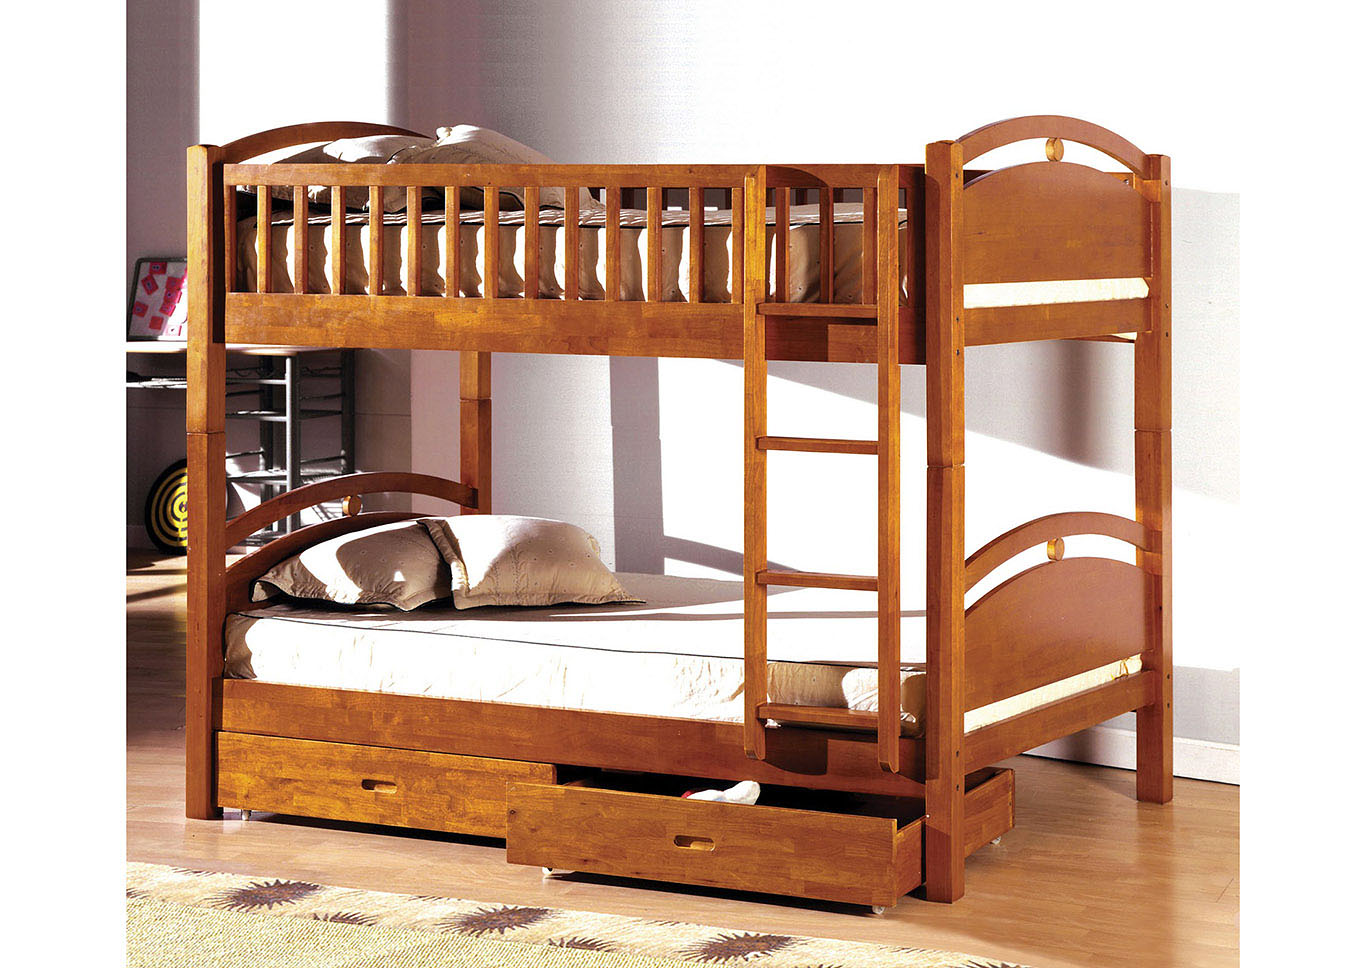 California l Oak Twin Bunk Bed w/2 Drawers,Furniture of America